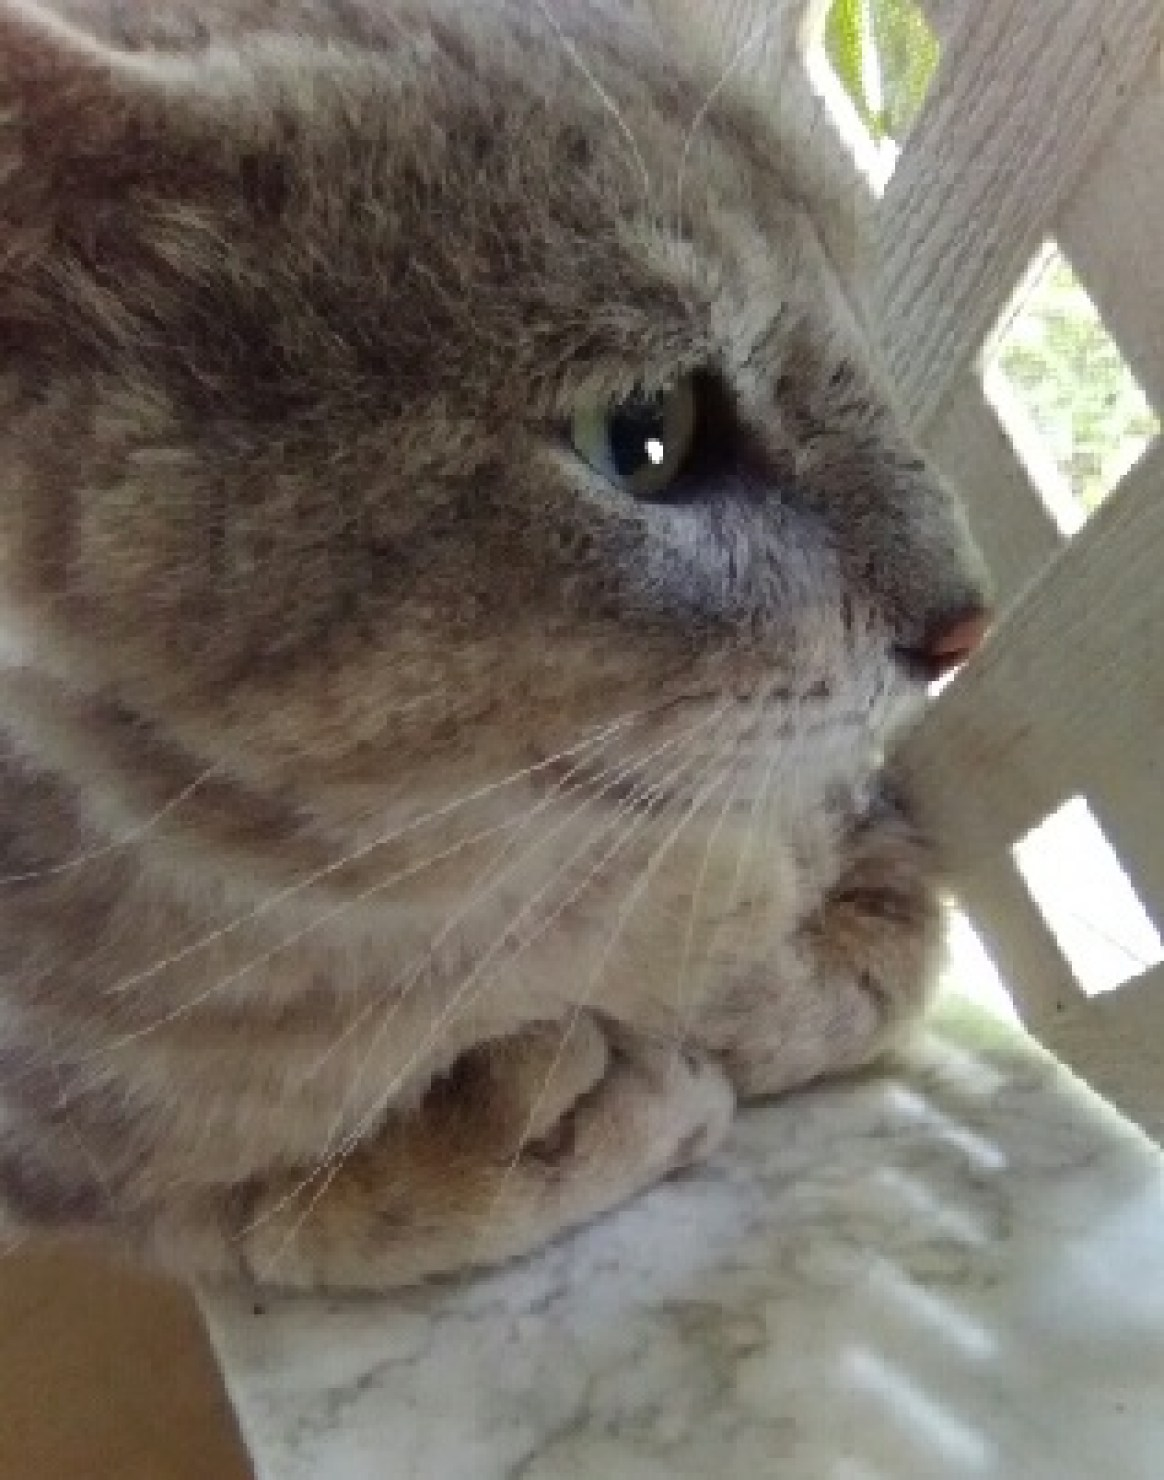 A close up of the face of a gray cat looking out a window.